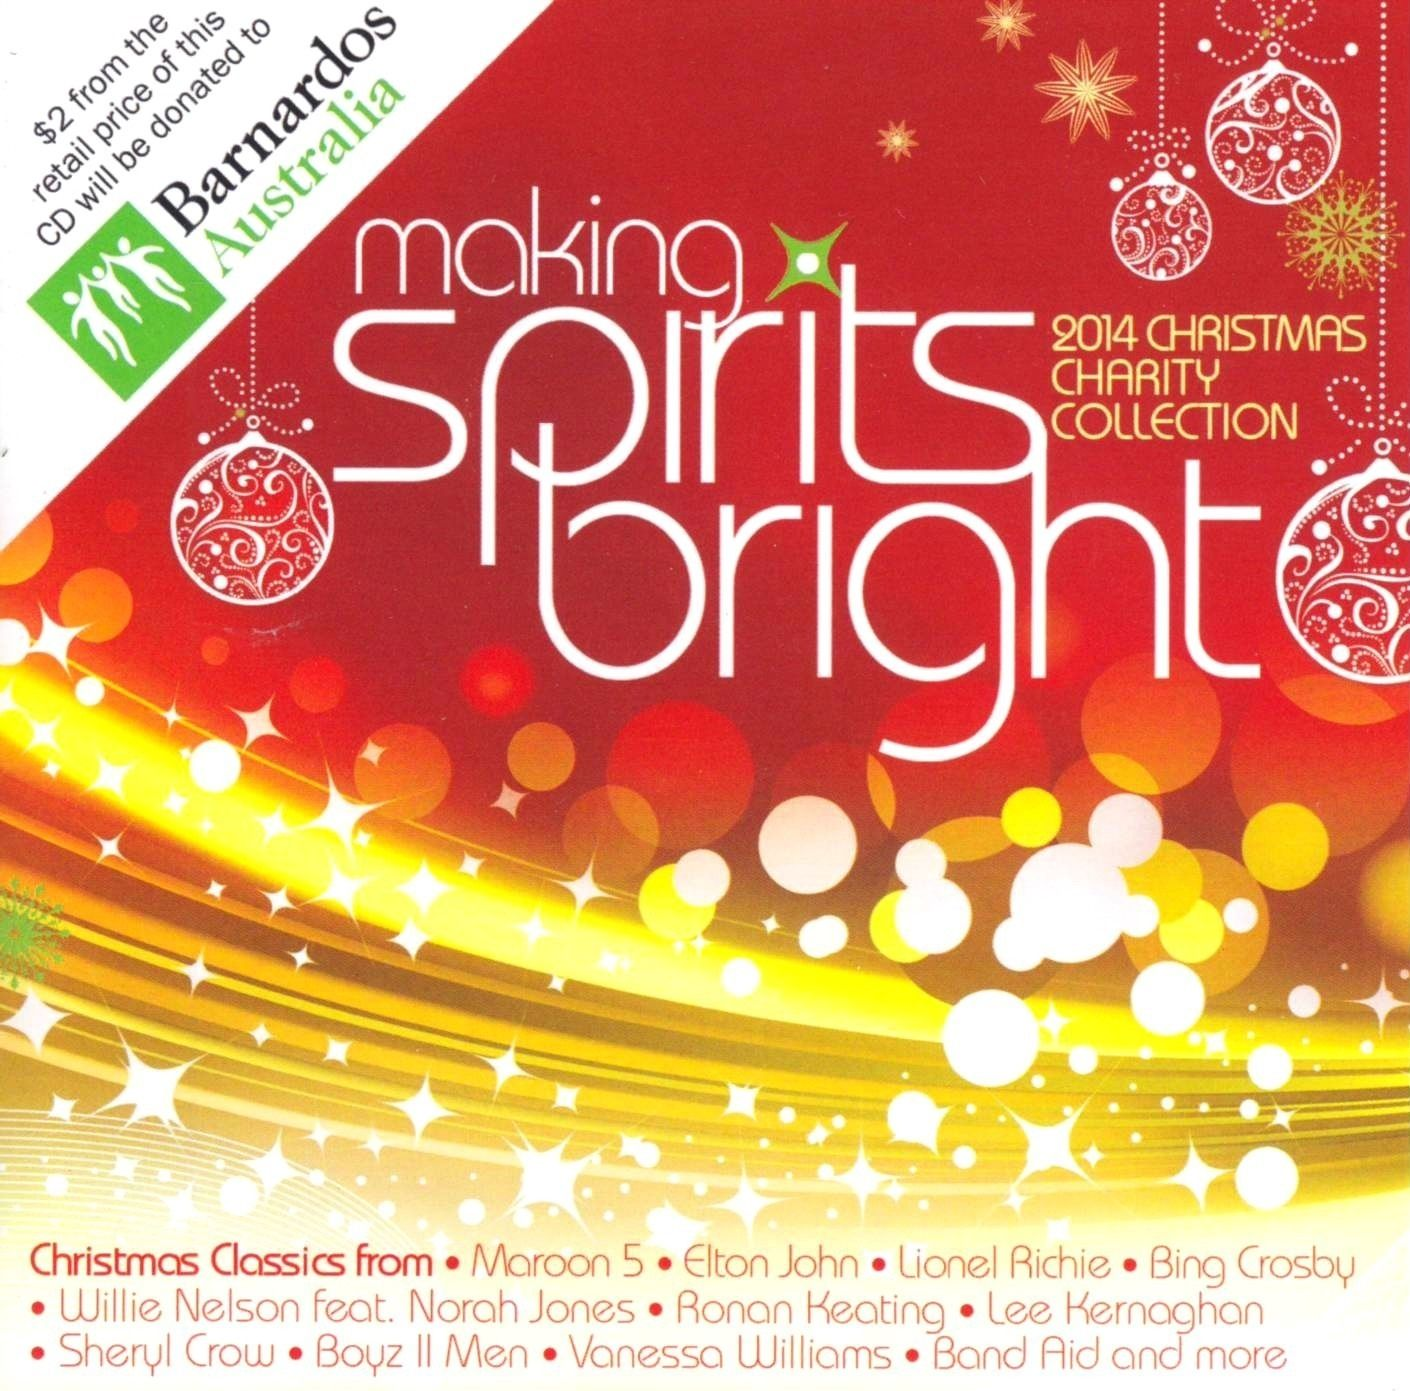 Making Spirits Bright 2014 Christmas Charity Collection